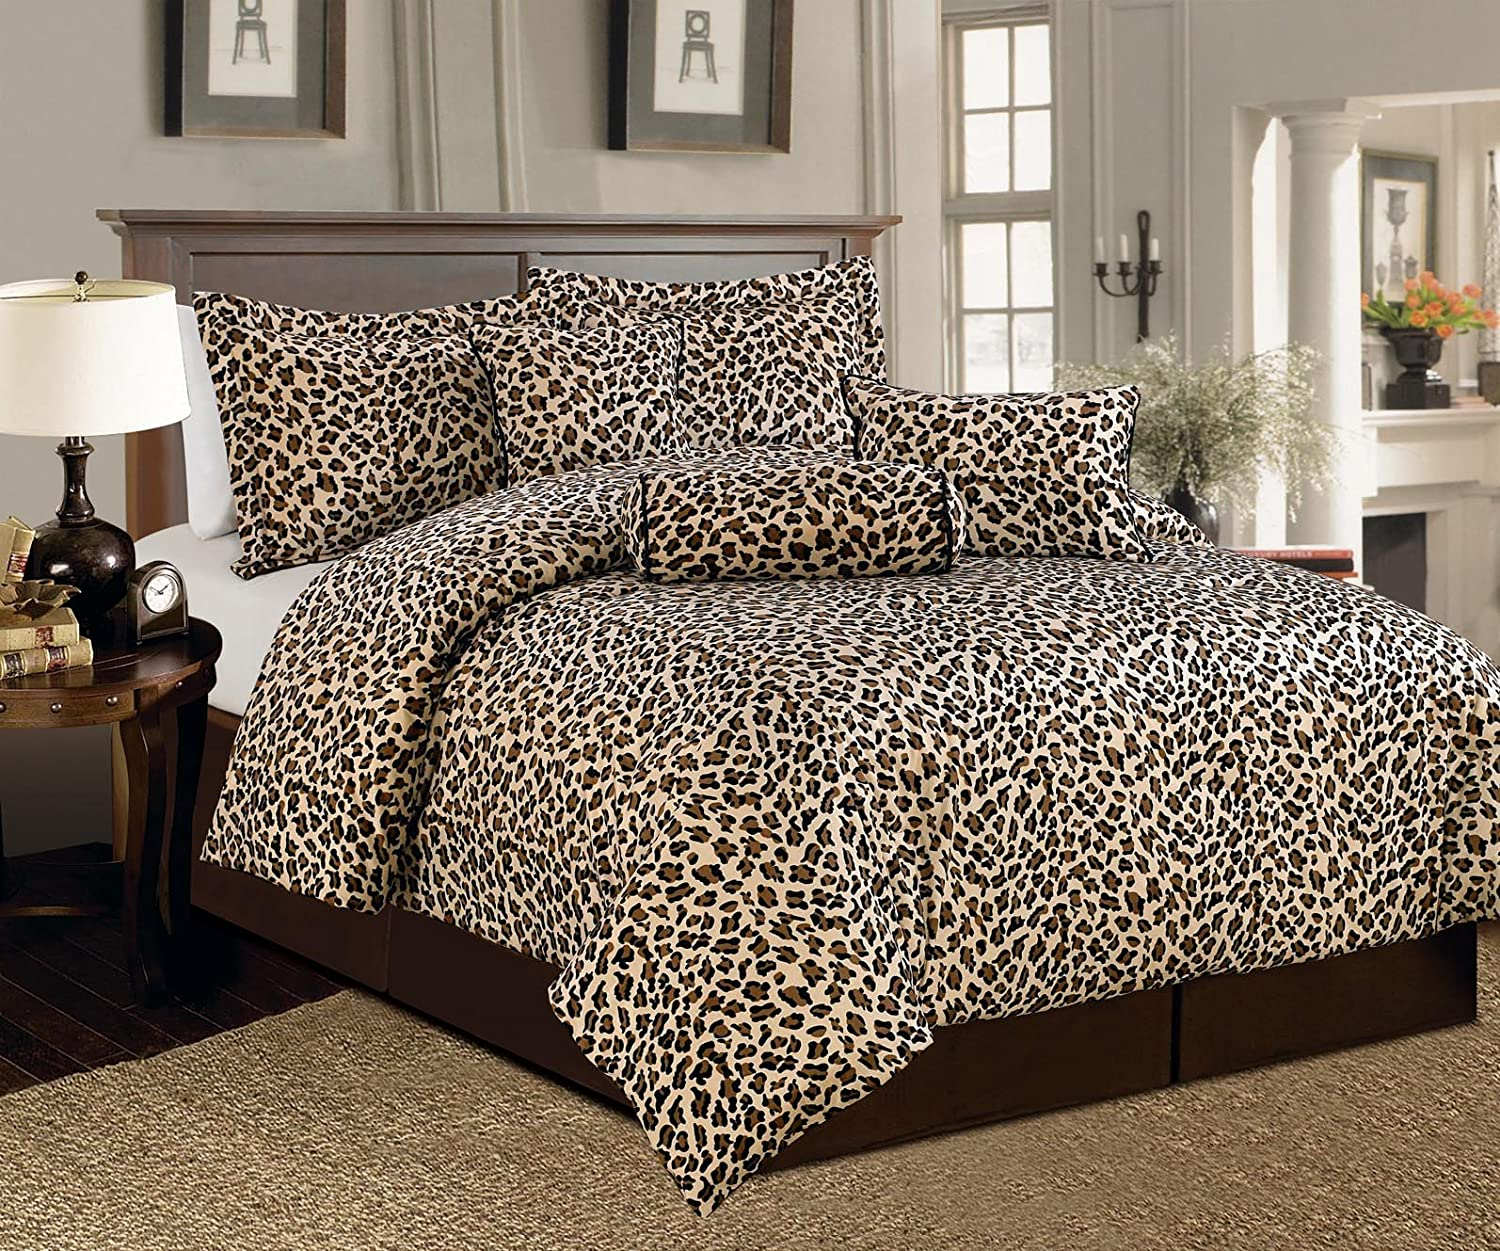 Cheap zebra print bedroom sets - Amazon Com Beautiful 7 Pc Brown And Beige Leopard Print Faux Fur Full Size Comforter Bedding Set Home Kitchen